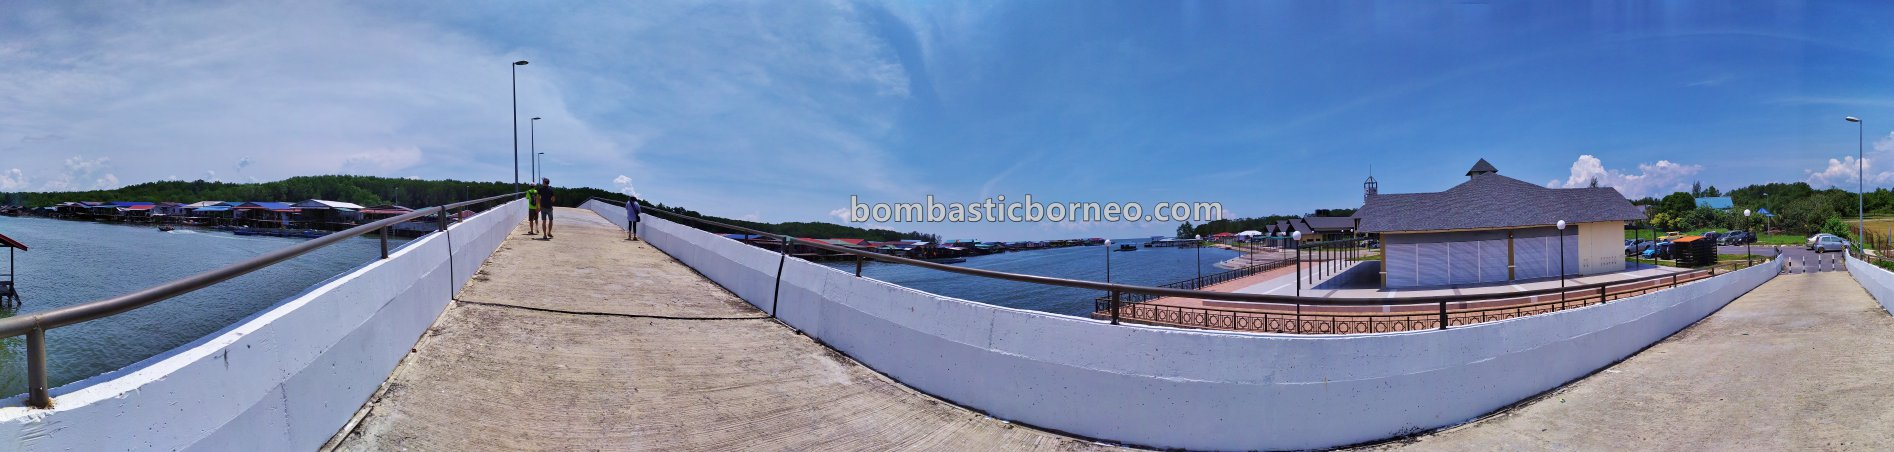 authentic, water village, Kampung Melayu, adventure, exploration, backpackers, destination, Malaysia, Tourism, tourist attraction, travel guide, Borneo, 婆罗洲游踪, 马来西亚砂拉越, 老越旅游景点,